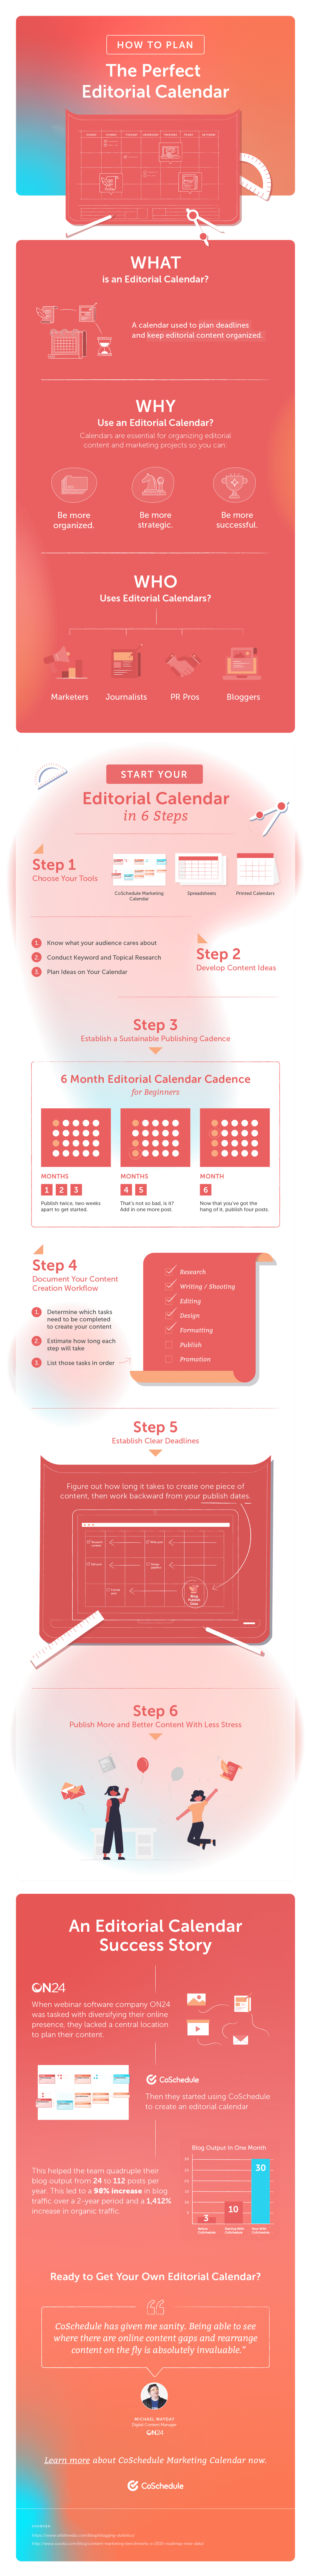 How to plan the perfect editorial calendar infographic